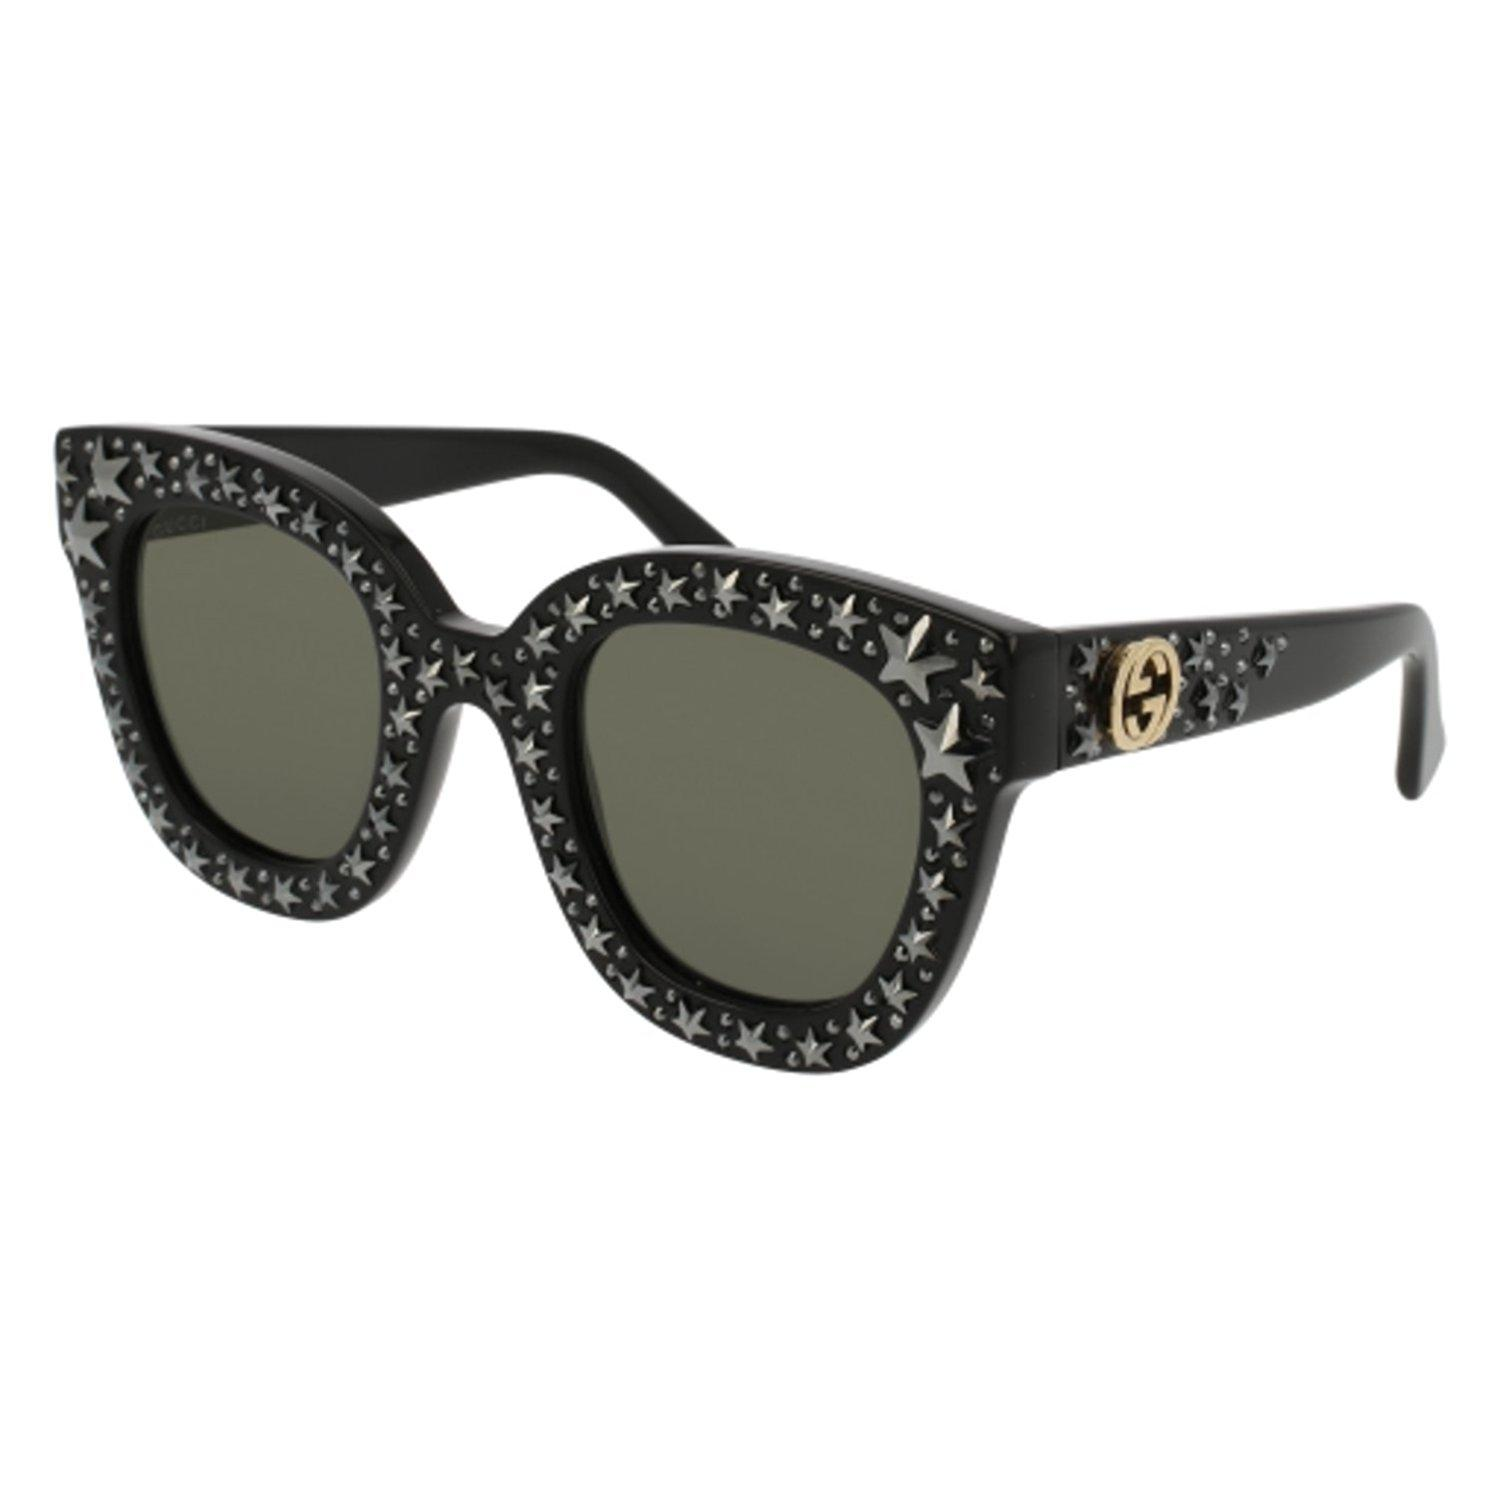 star studded sunglasses - Brown Gucci 6FnDd